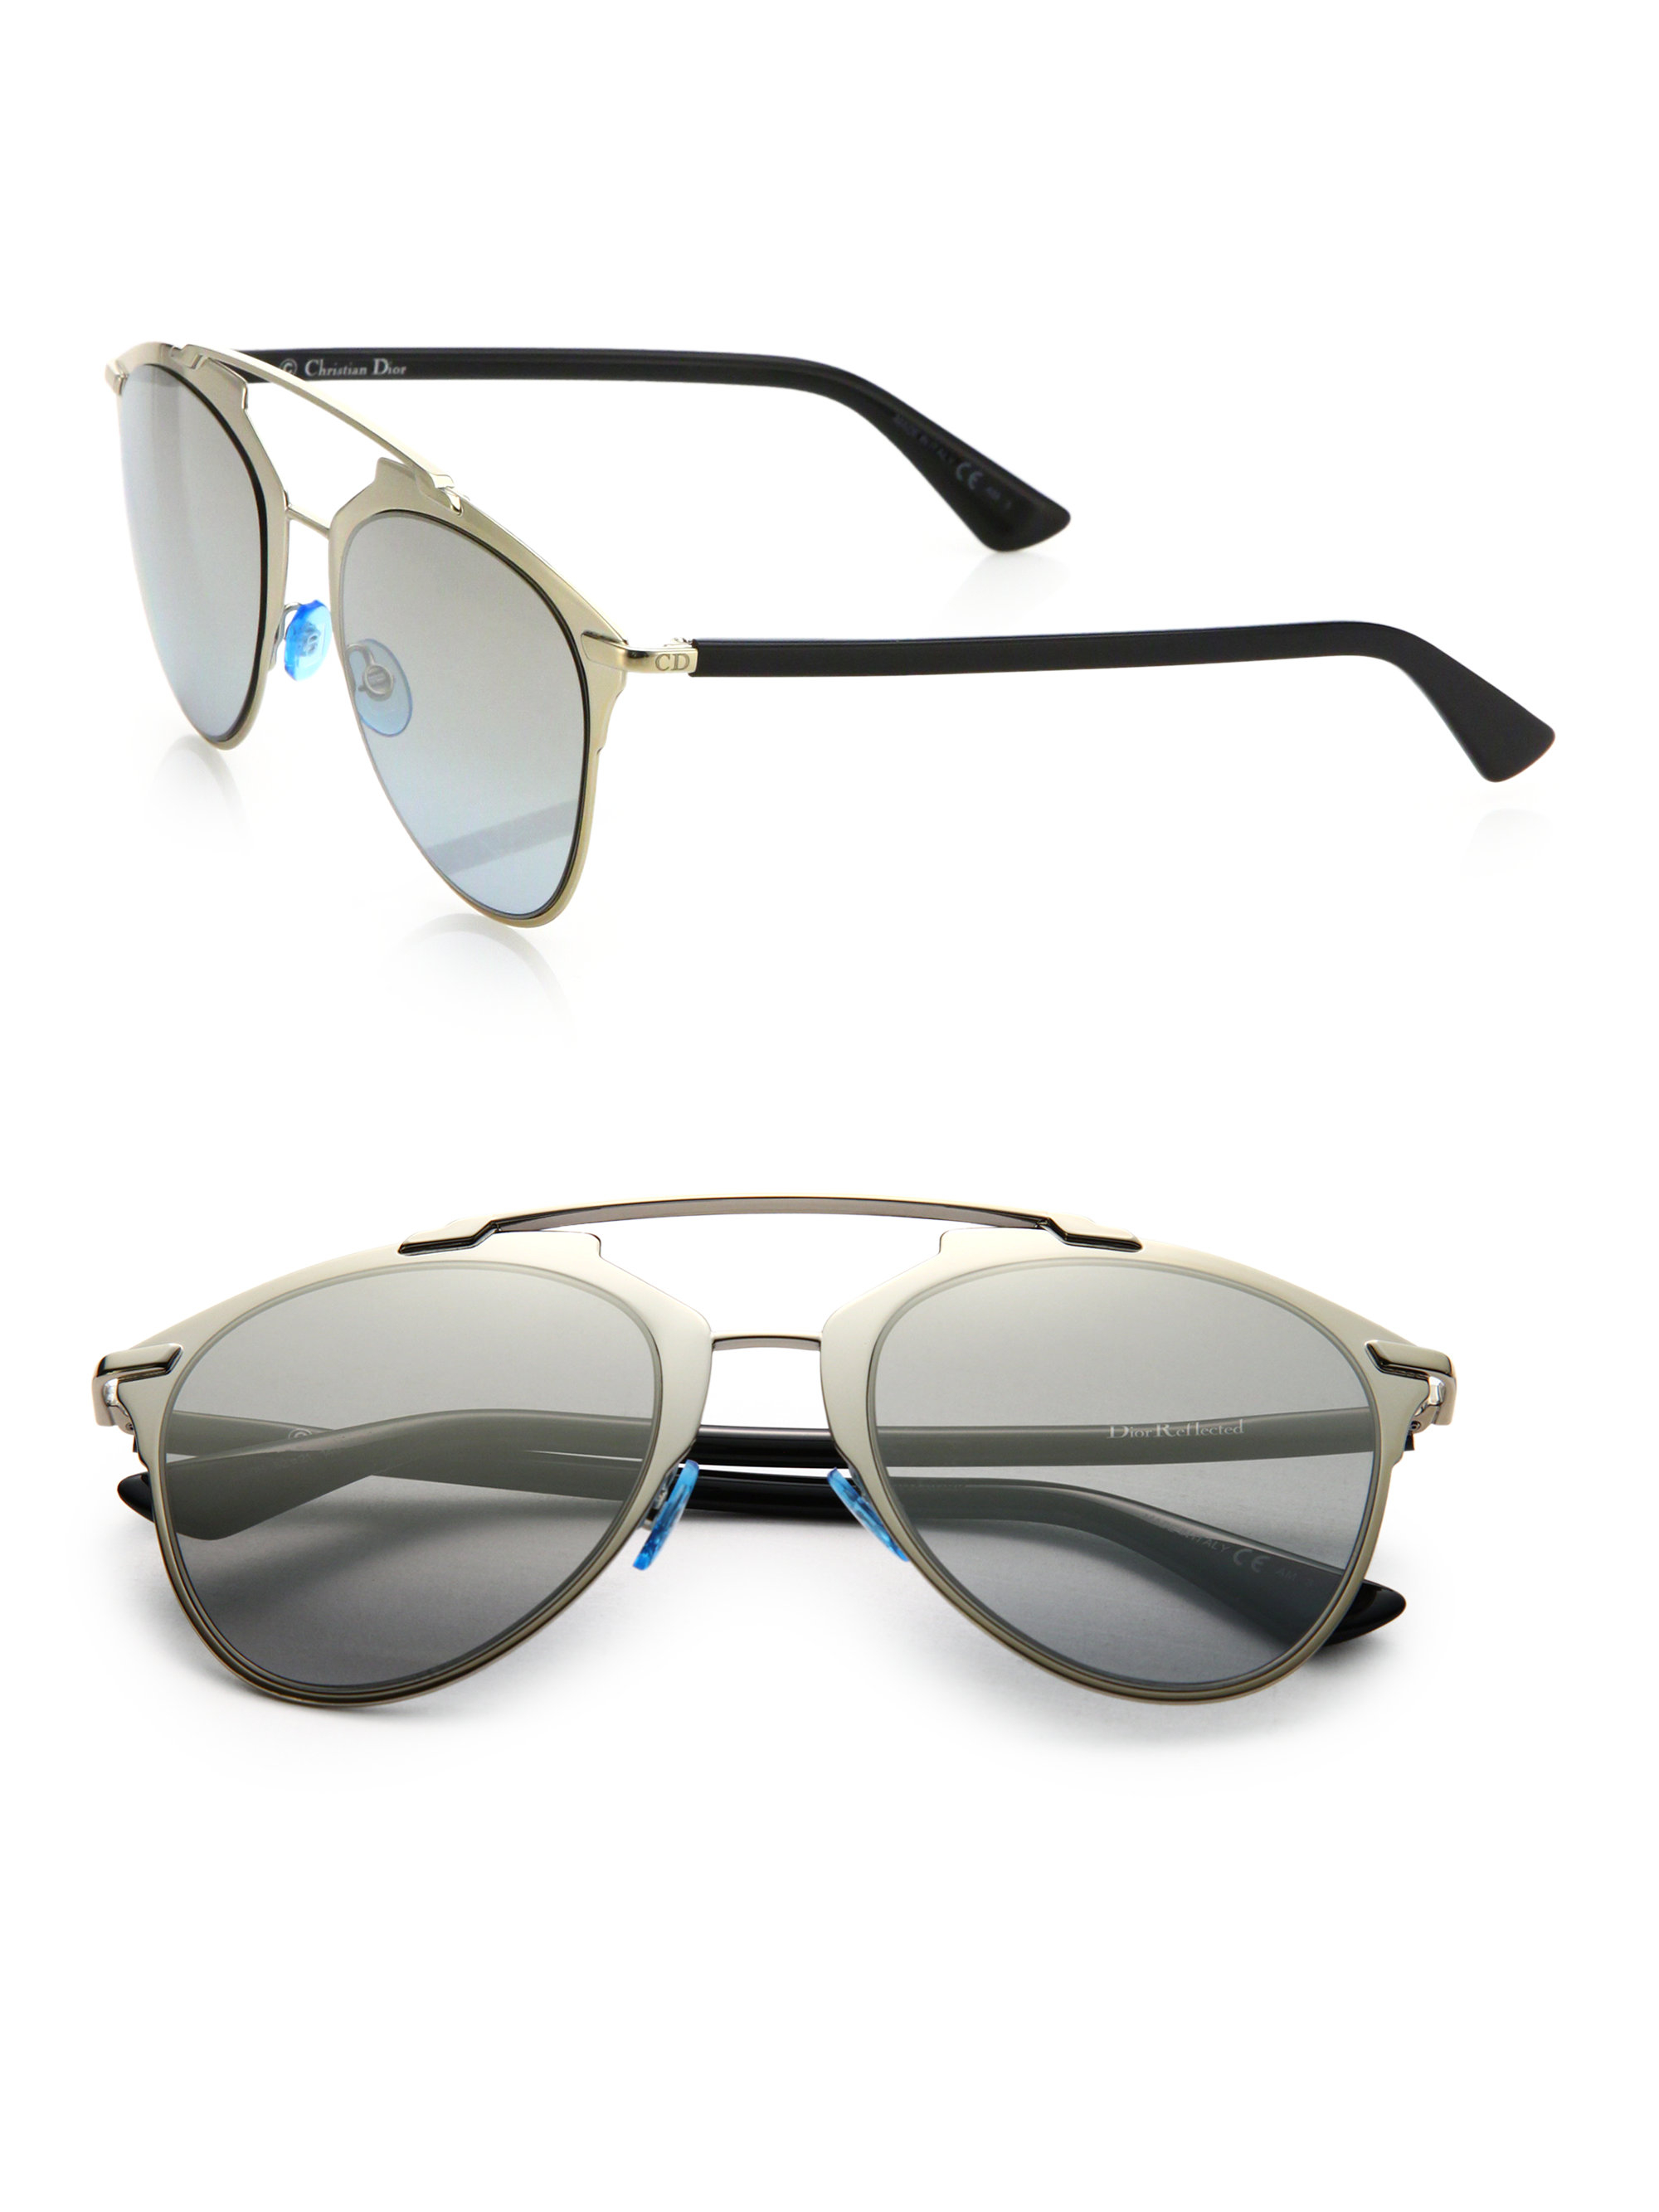 367e099ee63 Dior Reflected Sunglasses Gold And Black